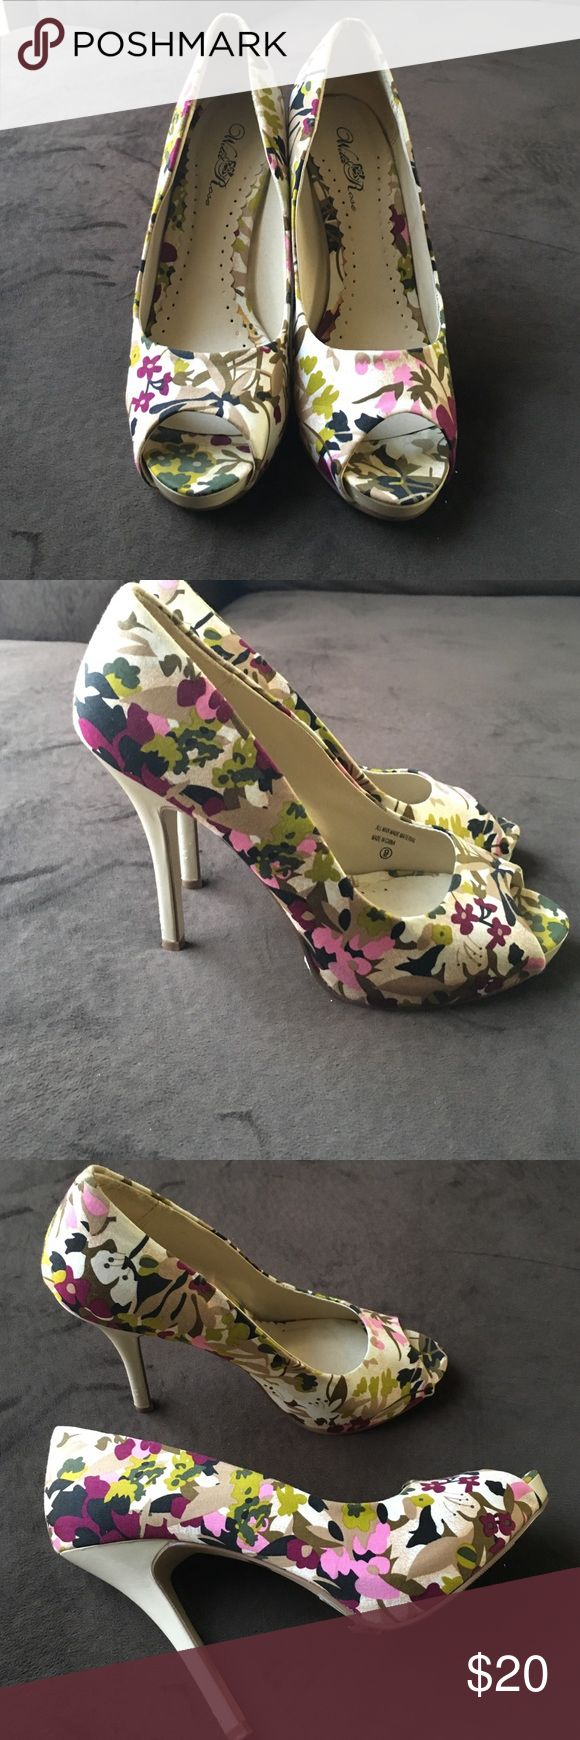 Wild Rose Peep Toe Pumps 👠 Wild Rose Peep Toe Pumps 👠 Shoes Heels